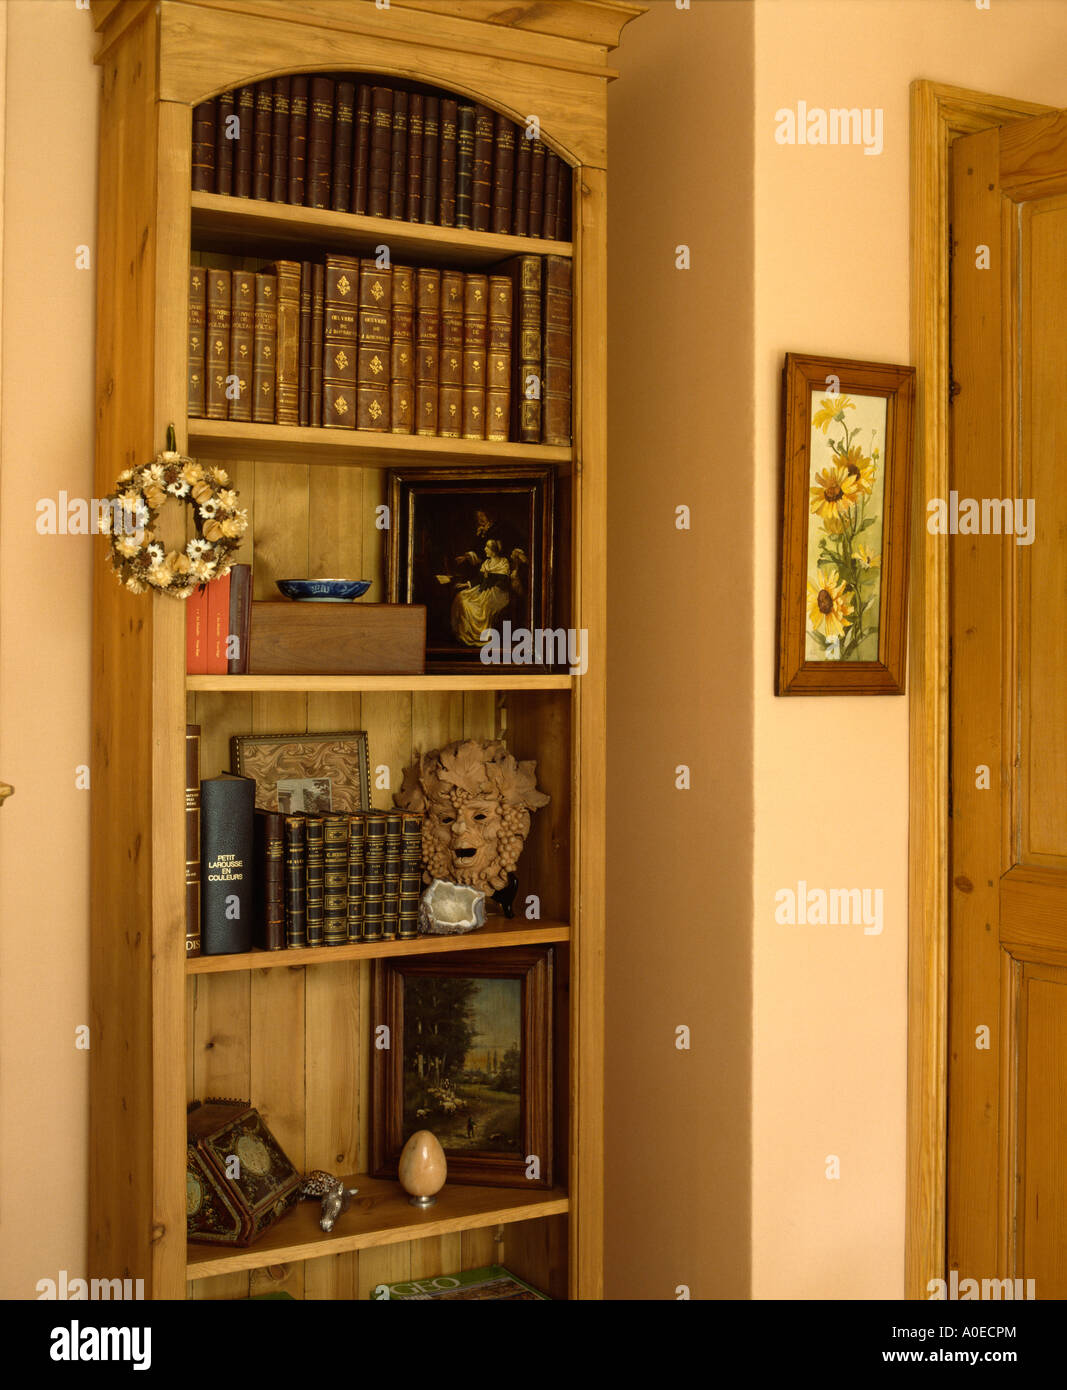 Books on recessed shelves - Stock Image